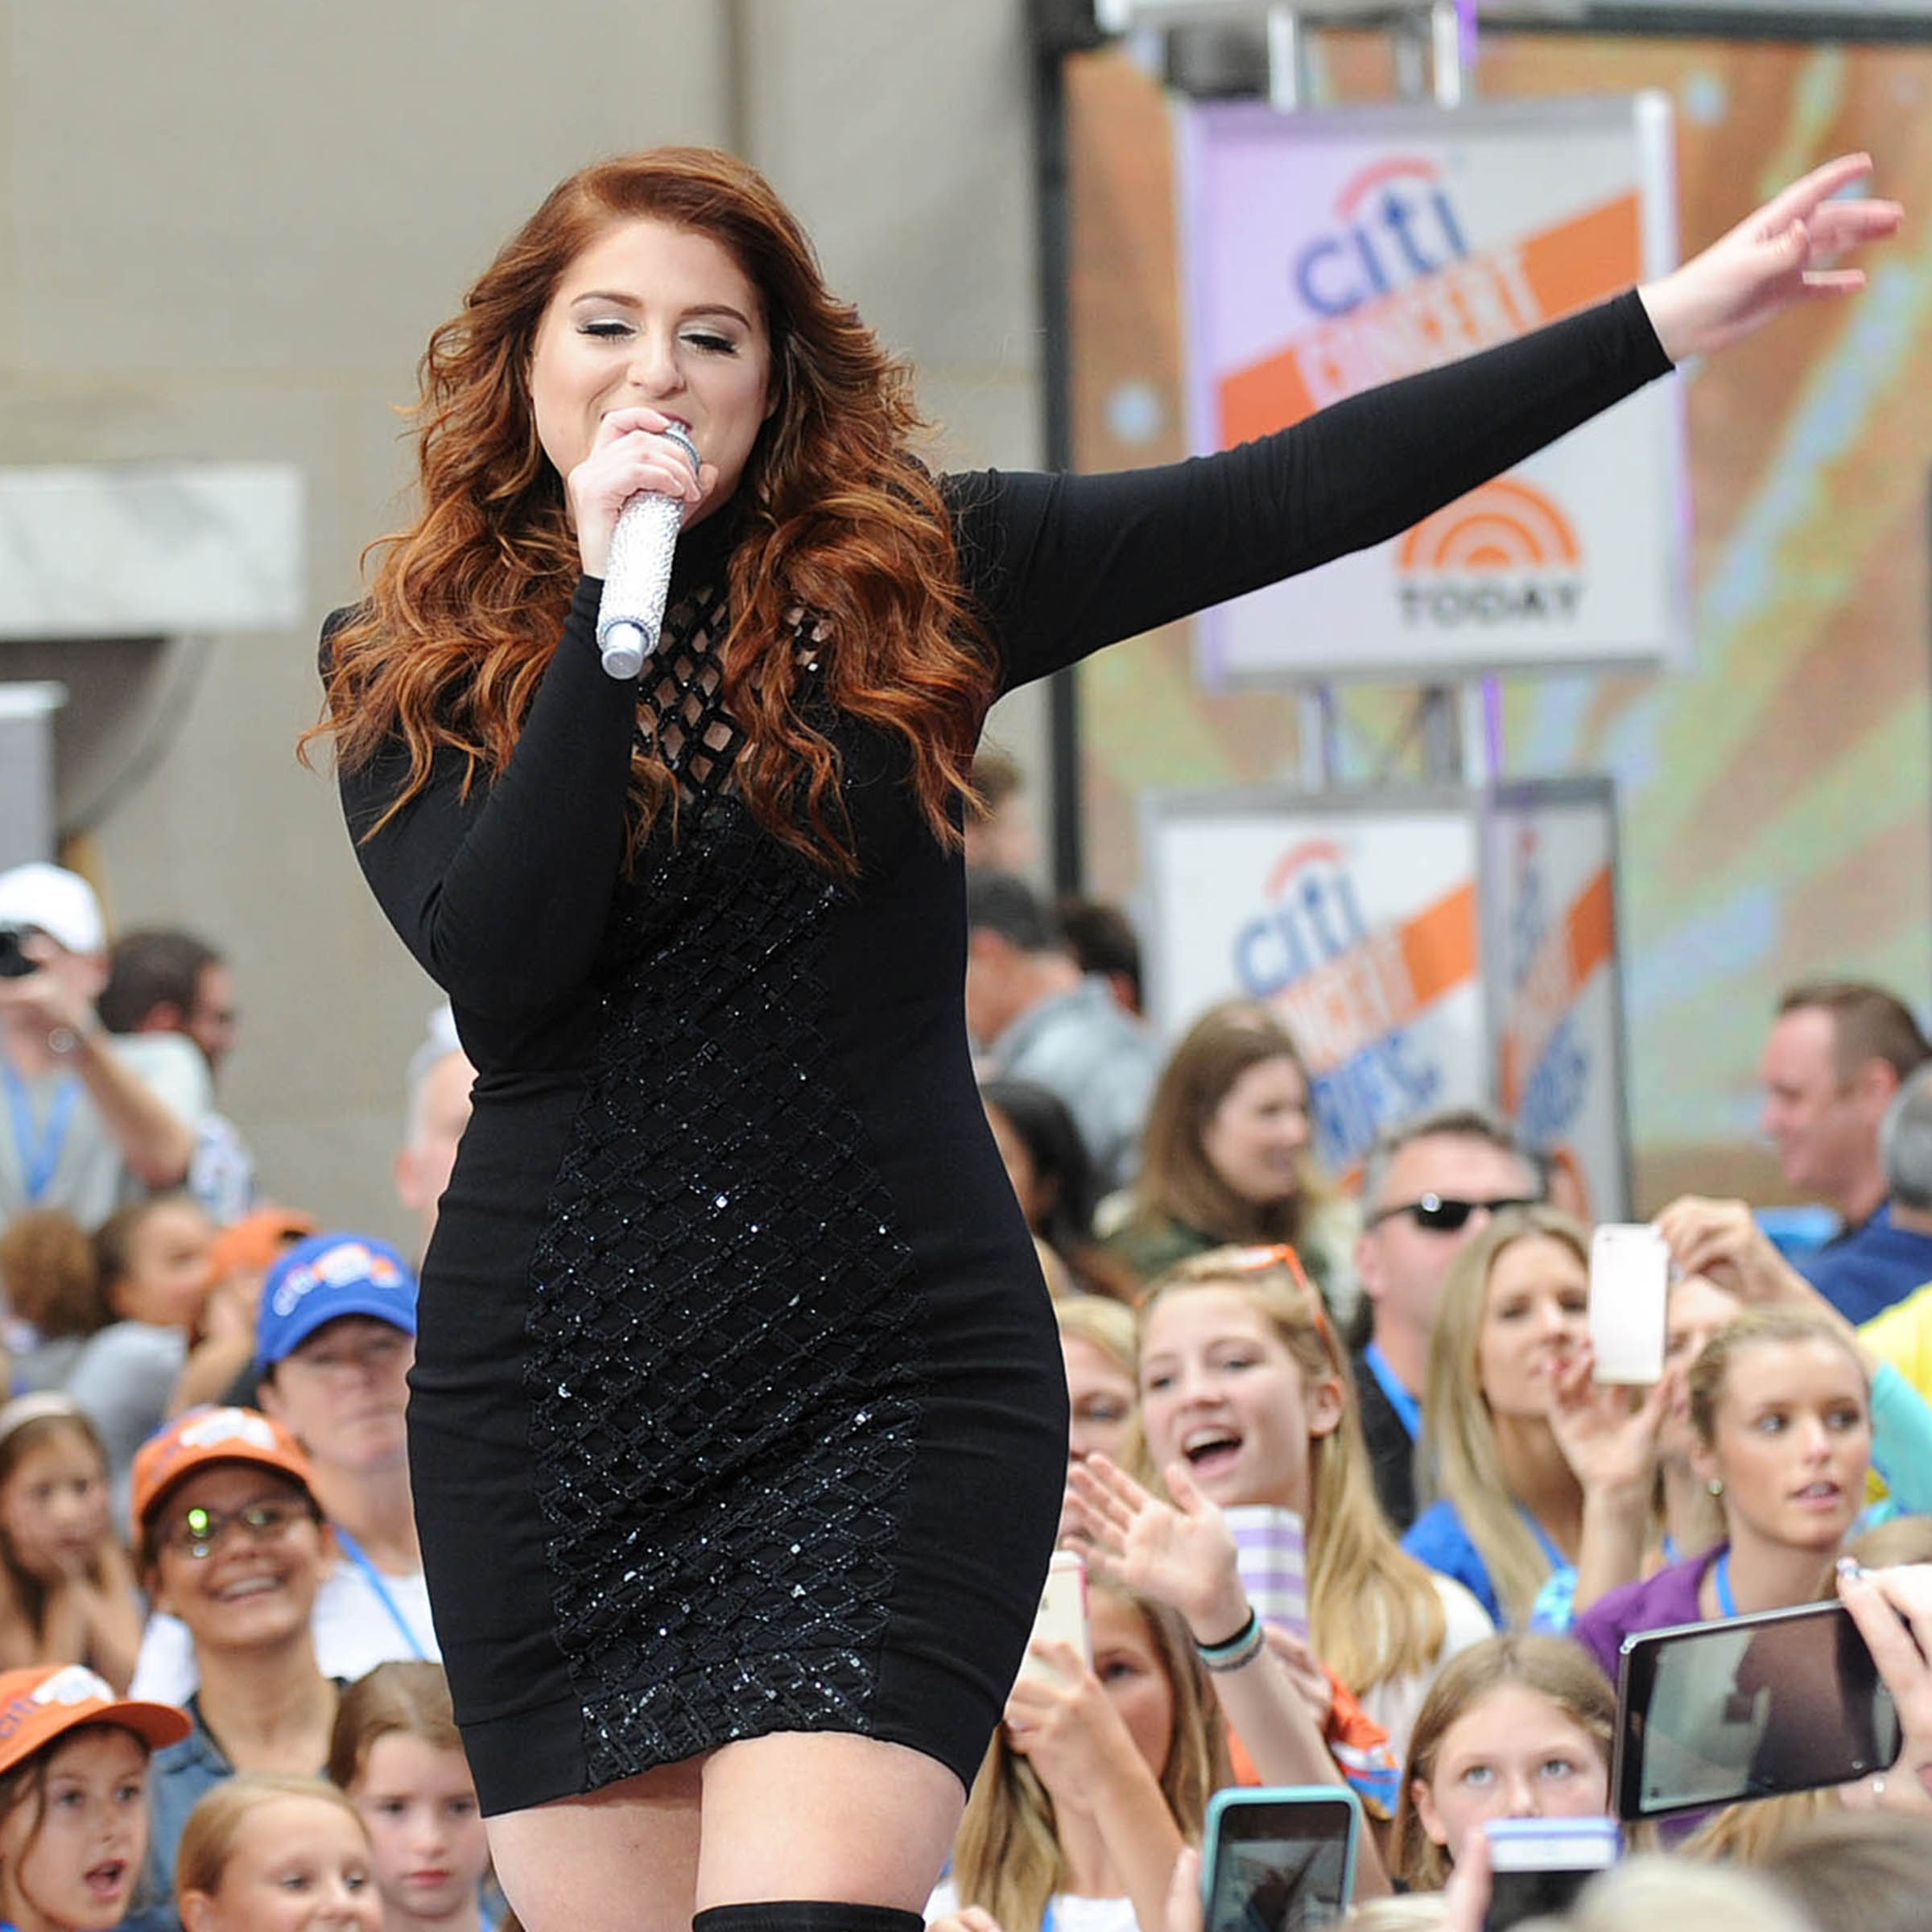 Meghan Trainor considers upping security after Christina Grimmie's death